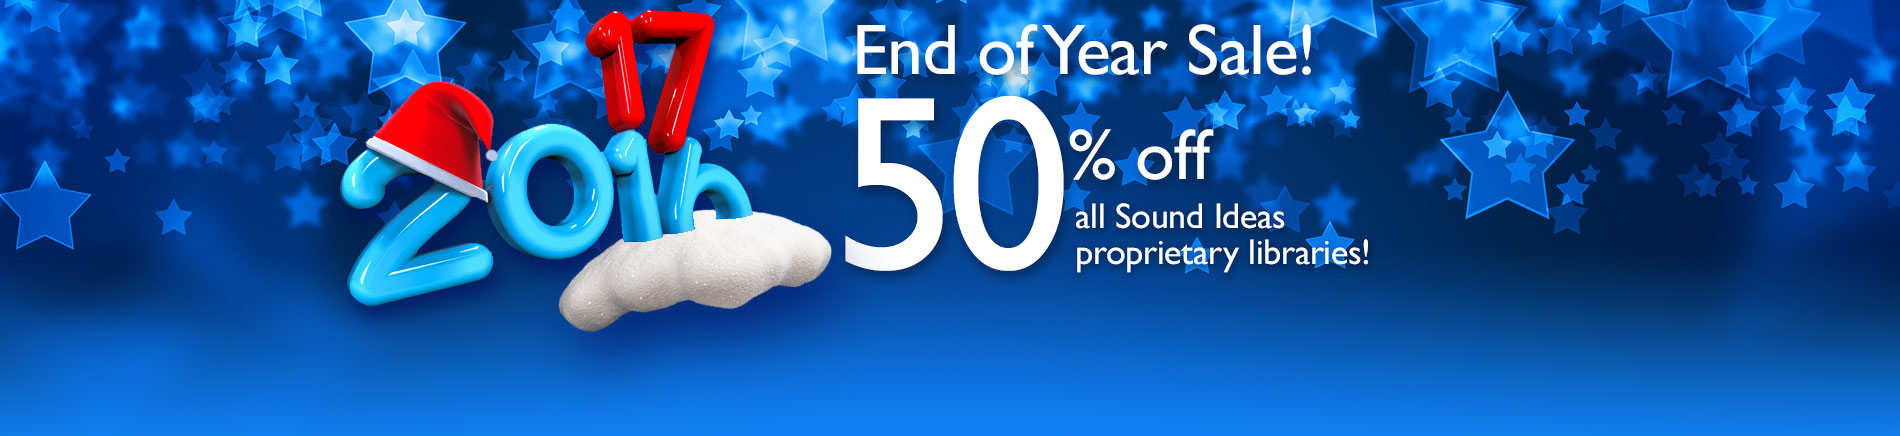 End of Year Sale - Get 50% off all Sound Ideas Proprietary Libraries! Our Biggest Sale of the Year! Don't miss out!